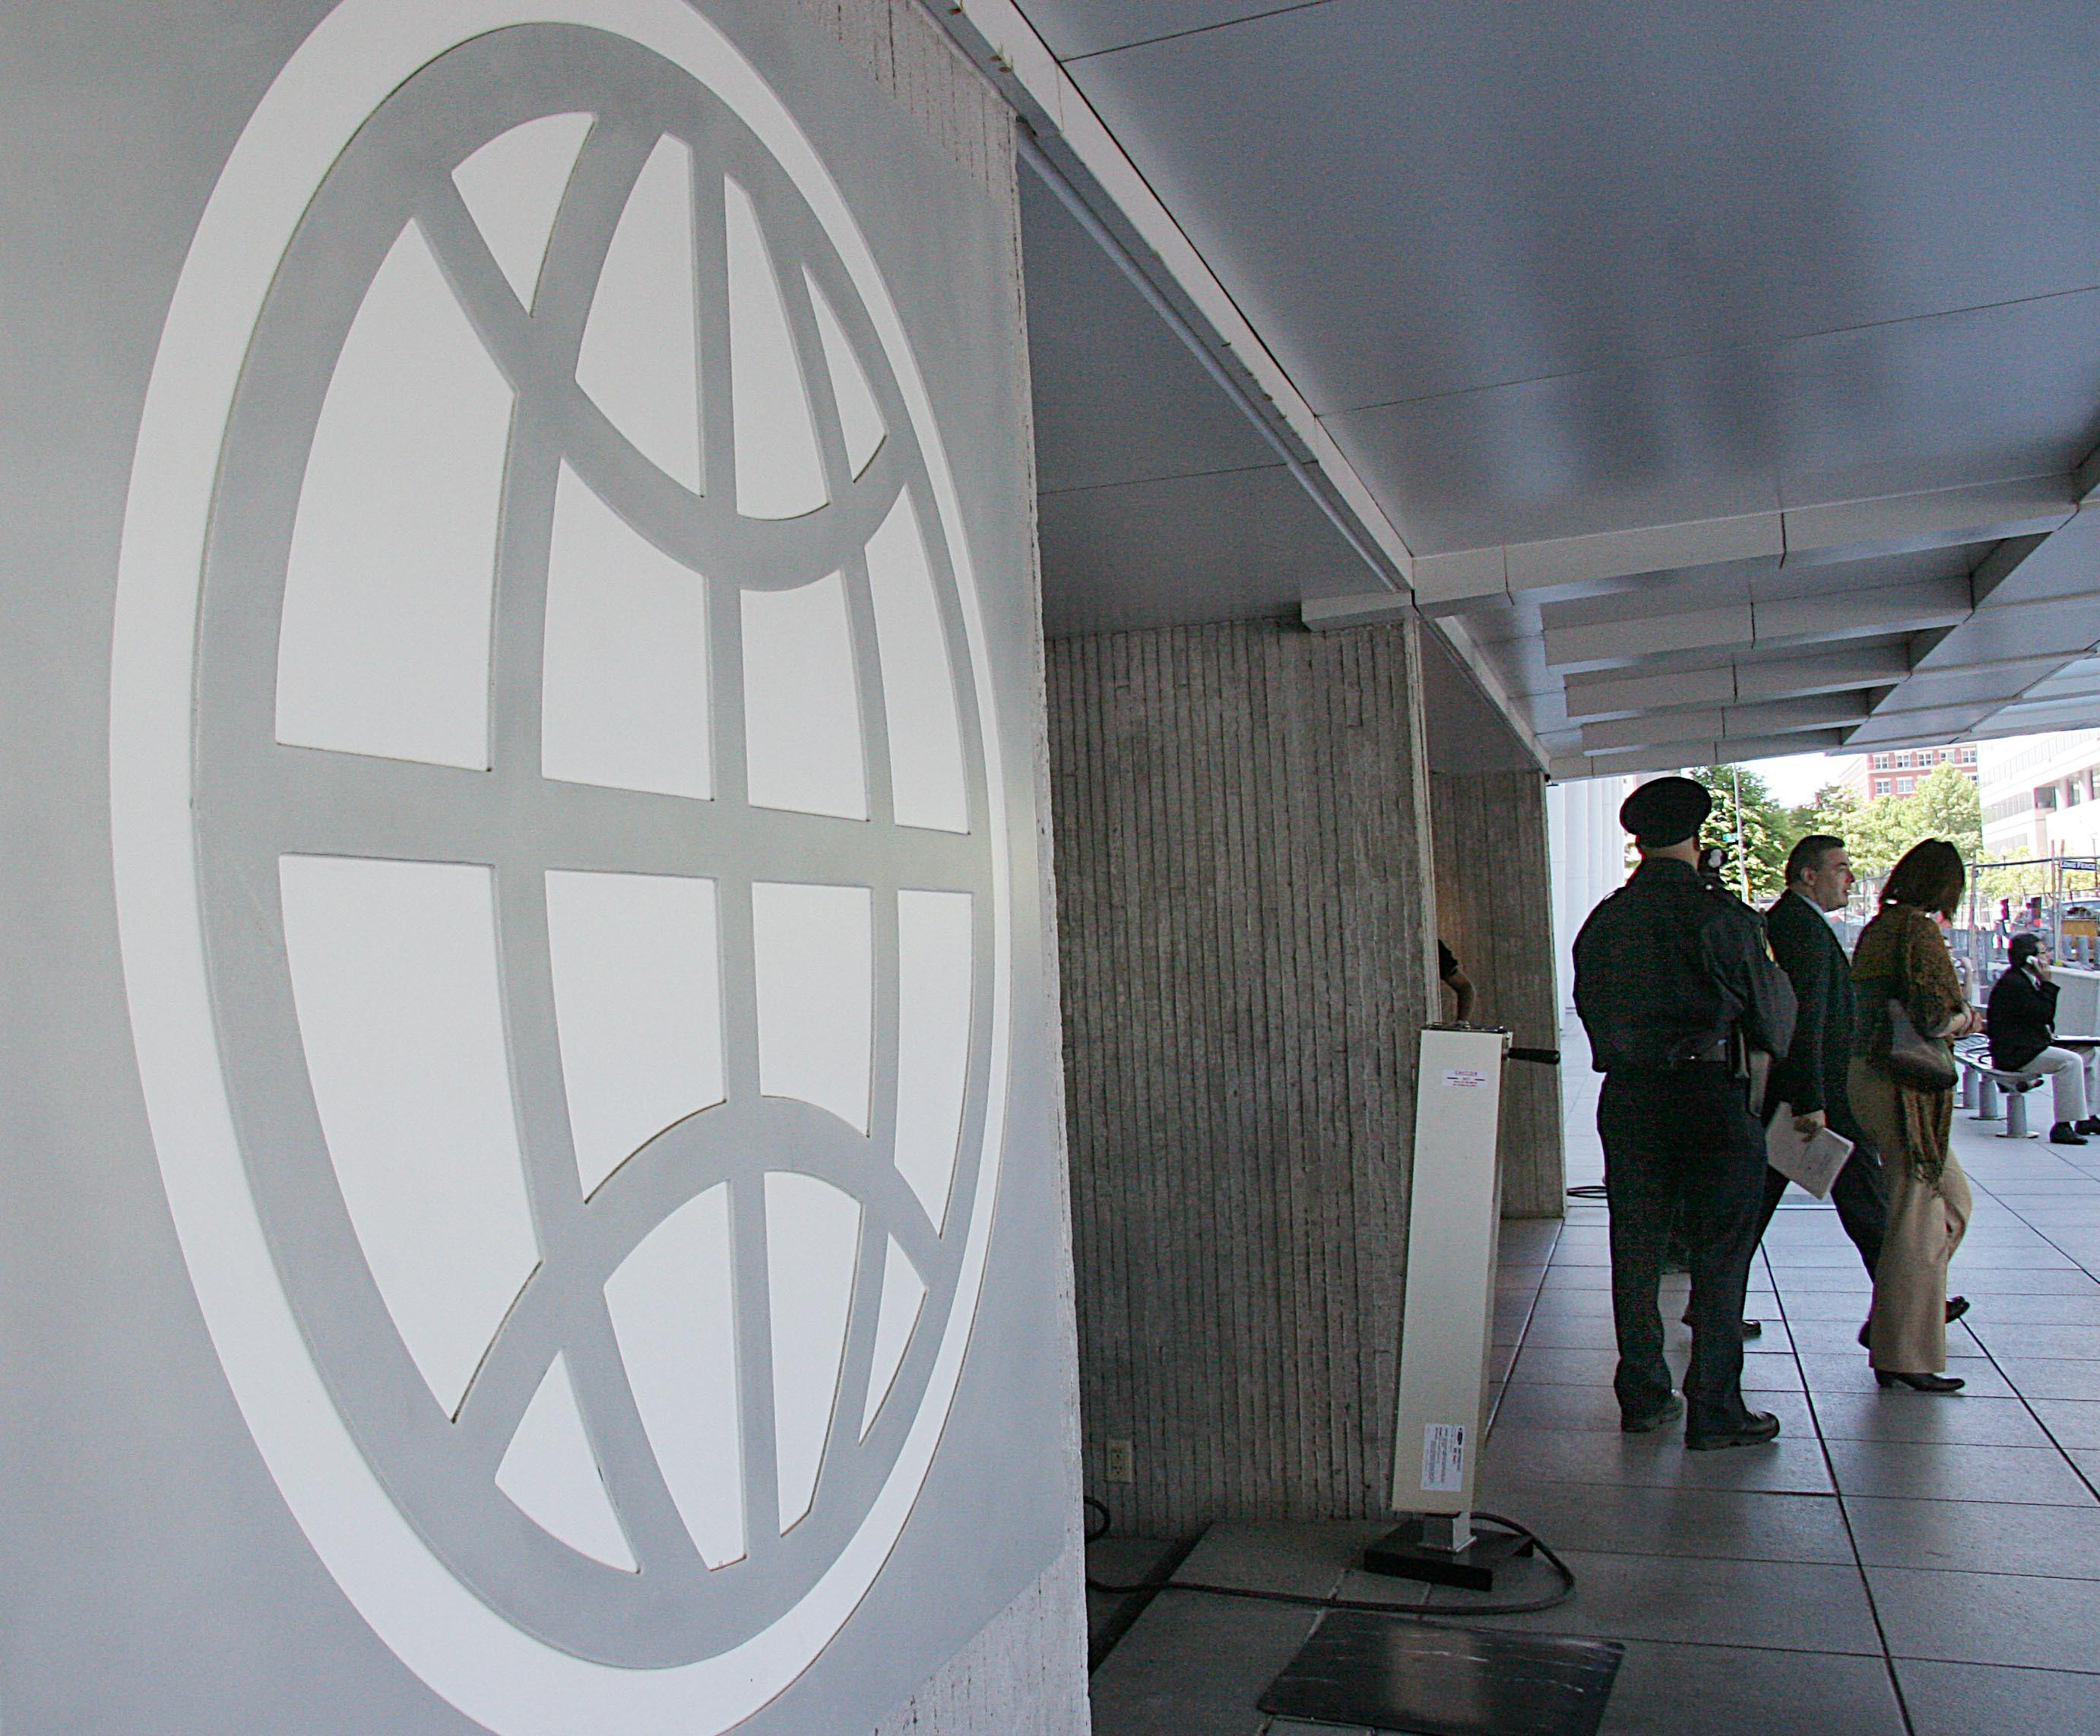 An internal investigation over the controversial handling by the World Bank, pictured on May 8, 2007, in Washington, DC, of a $1 bn loan from China to help poor countries has found no evidence of fraud, according to documents reviewed by AFP